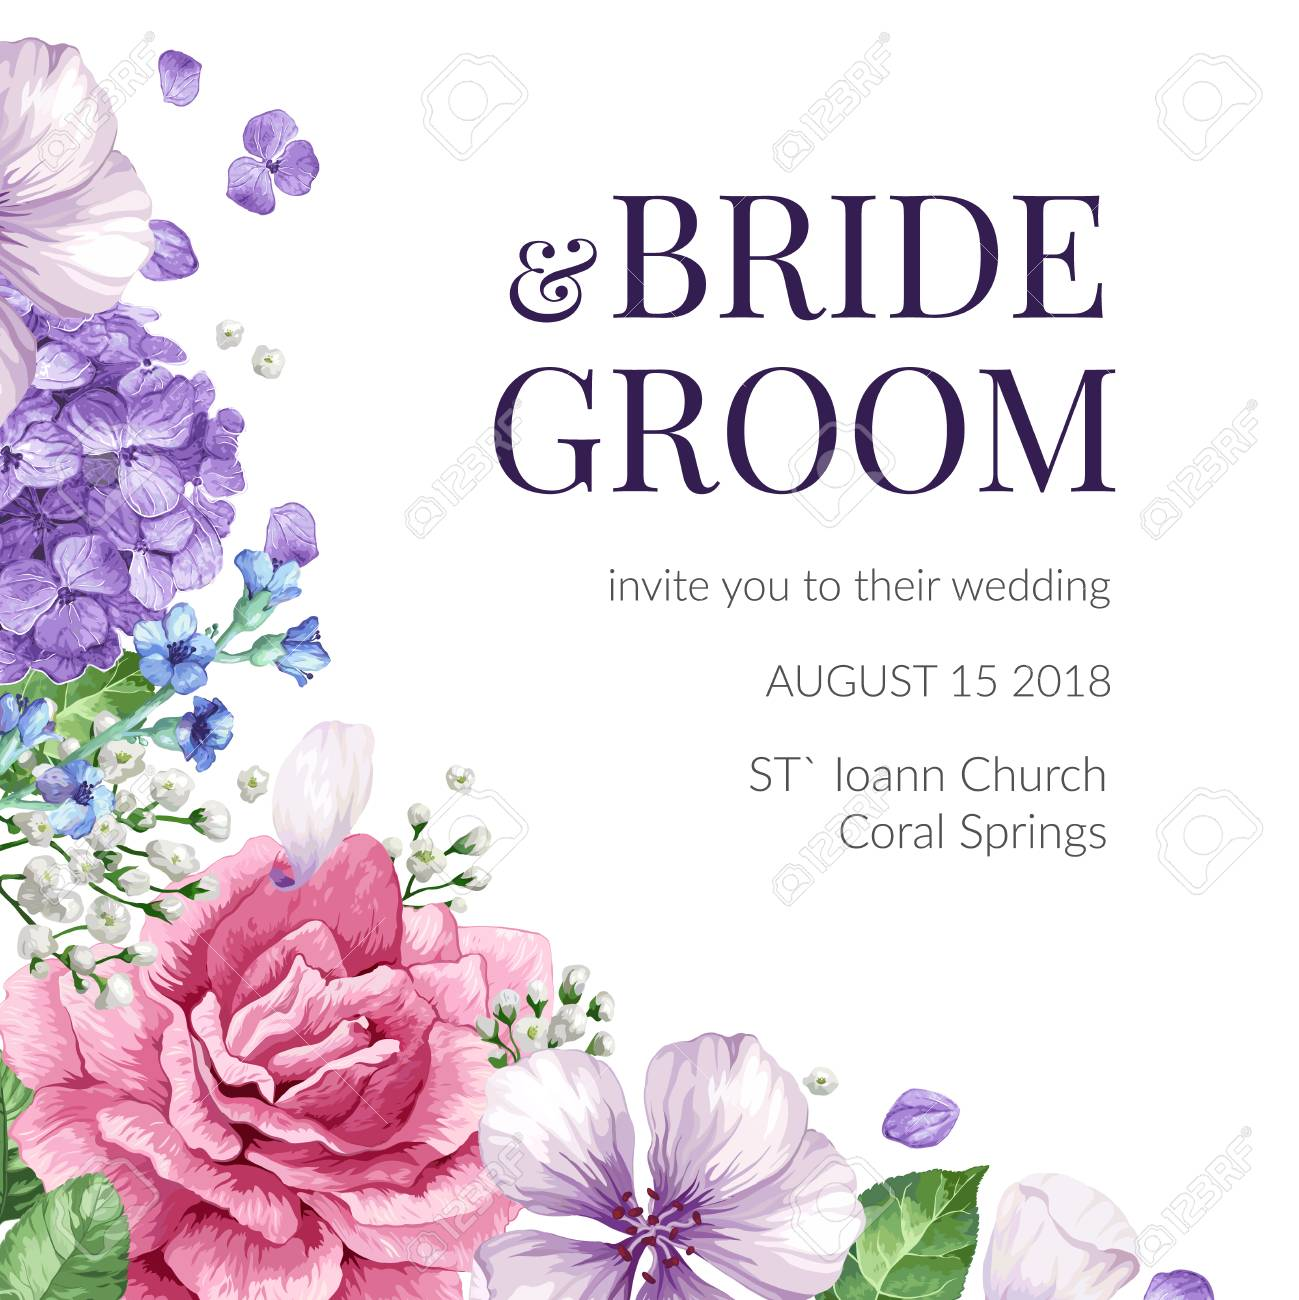 Wedding Invitation Card With Flowers In Watercolor Style On White